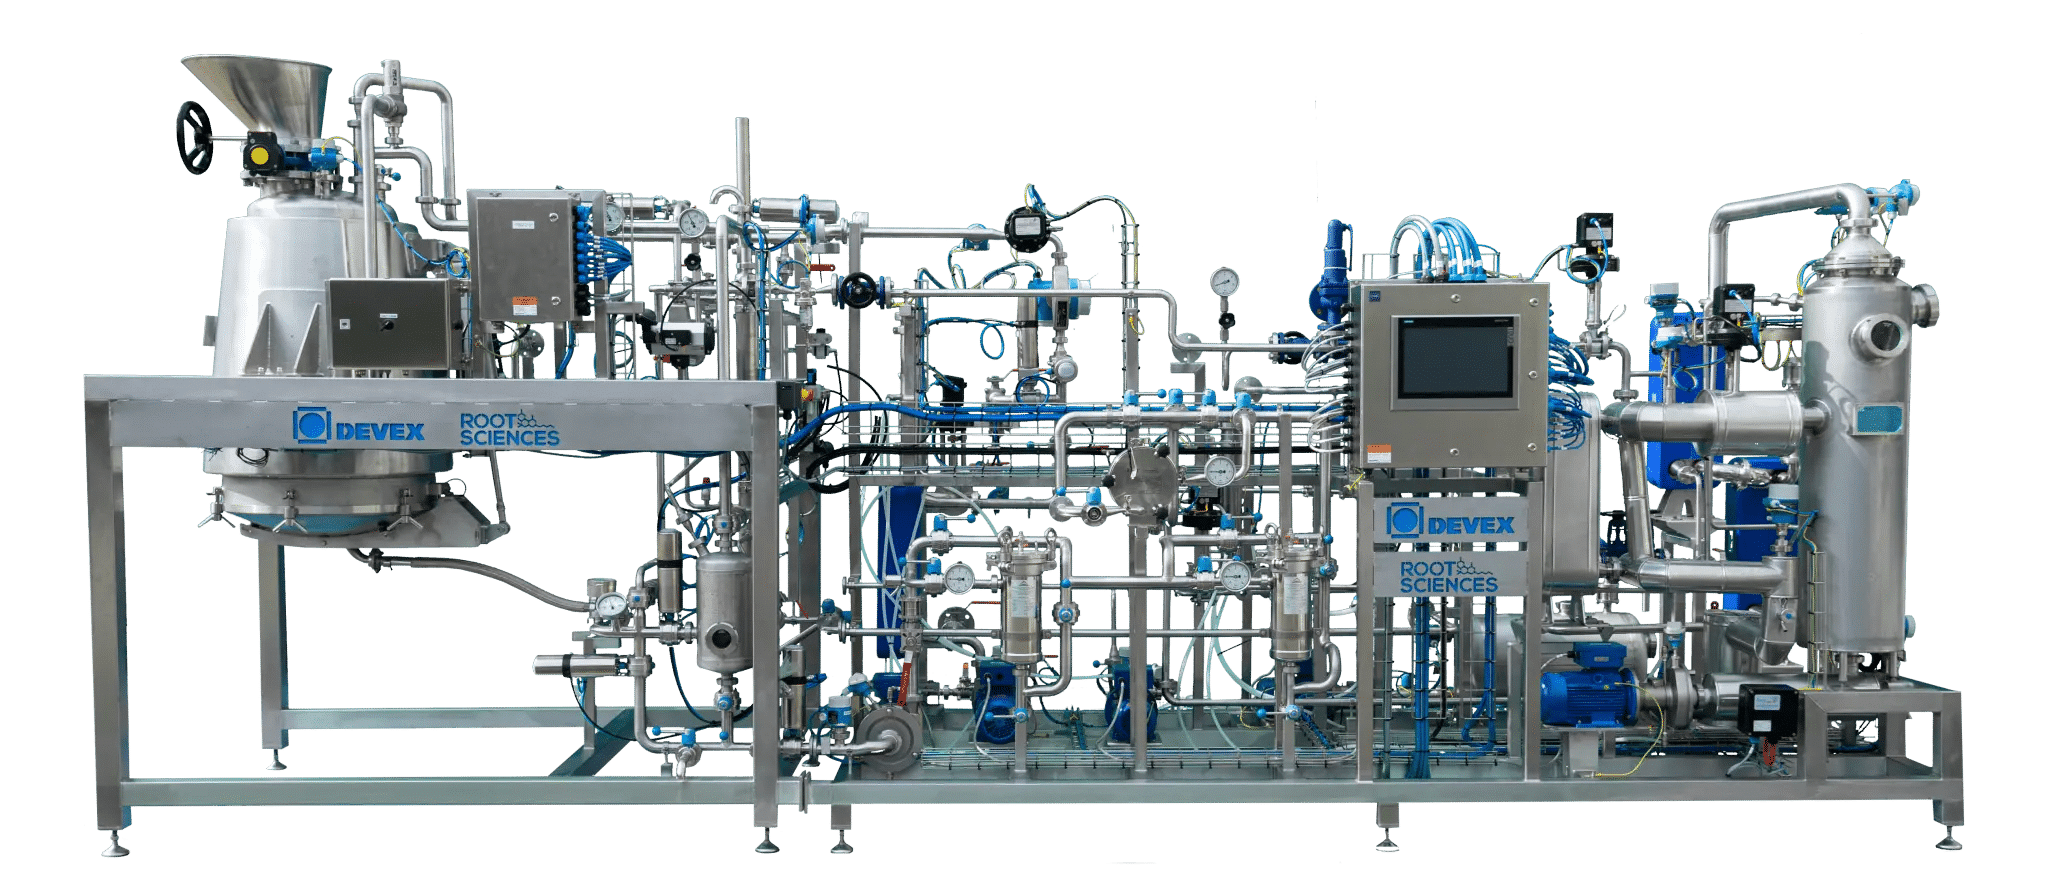 CryoEXS 400 ethanol extraction system